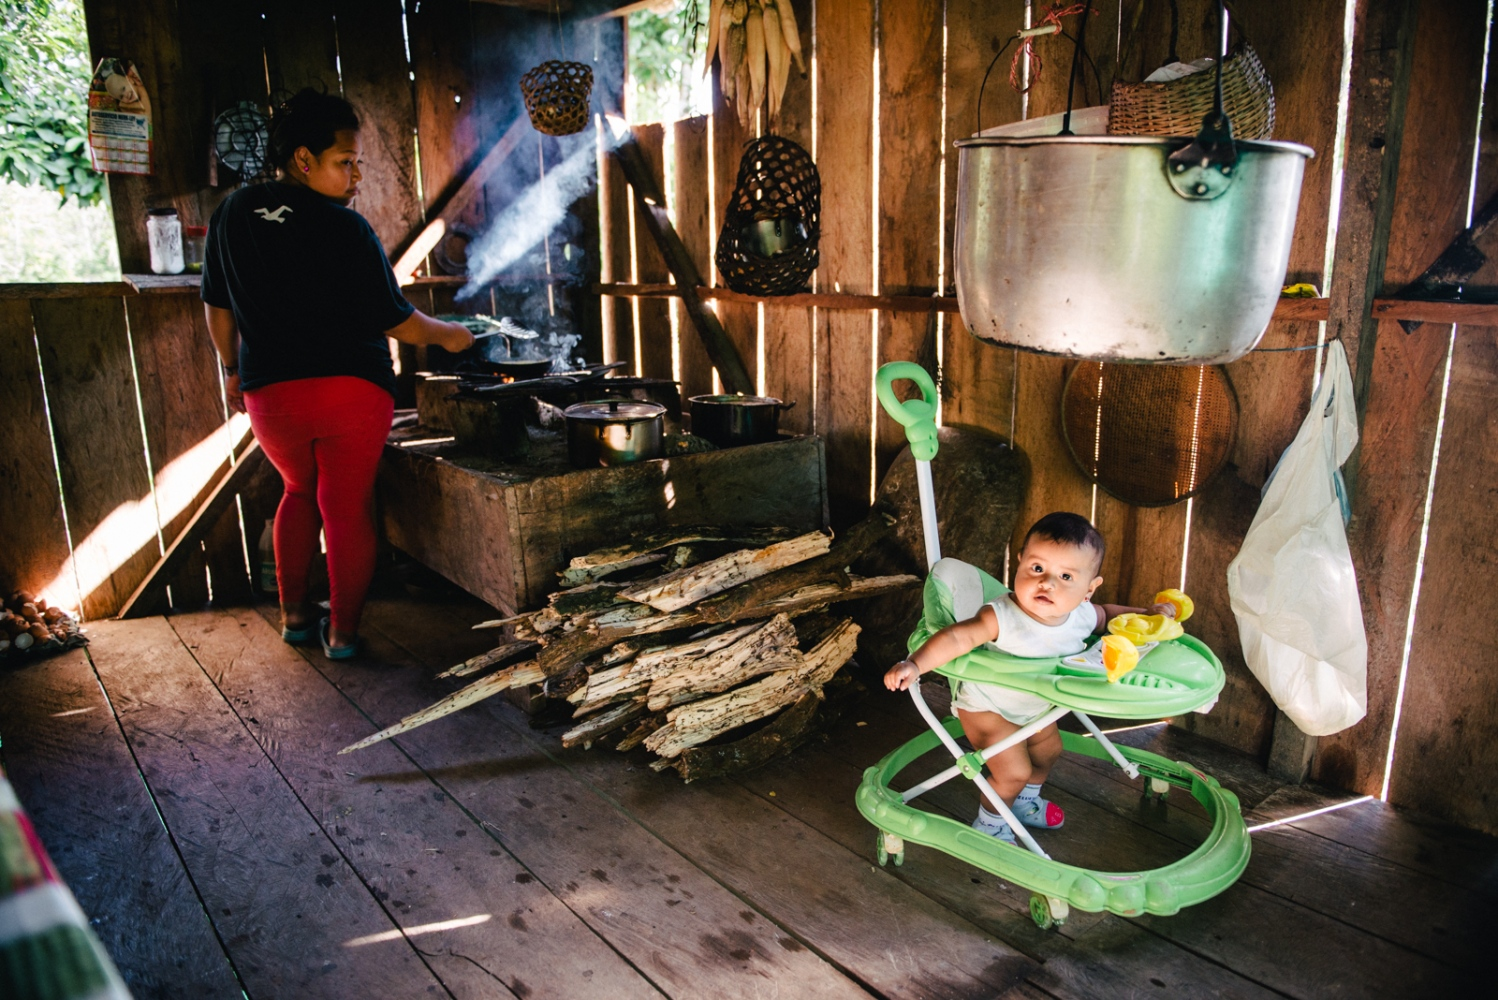 The daughter of Taita Juan prepares food with a traditional firewood stove as her baby girl plays about the kitchen. Mocoa, Putumayo, Colombia.